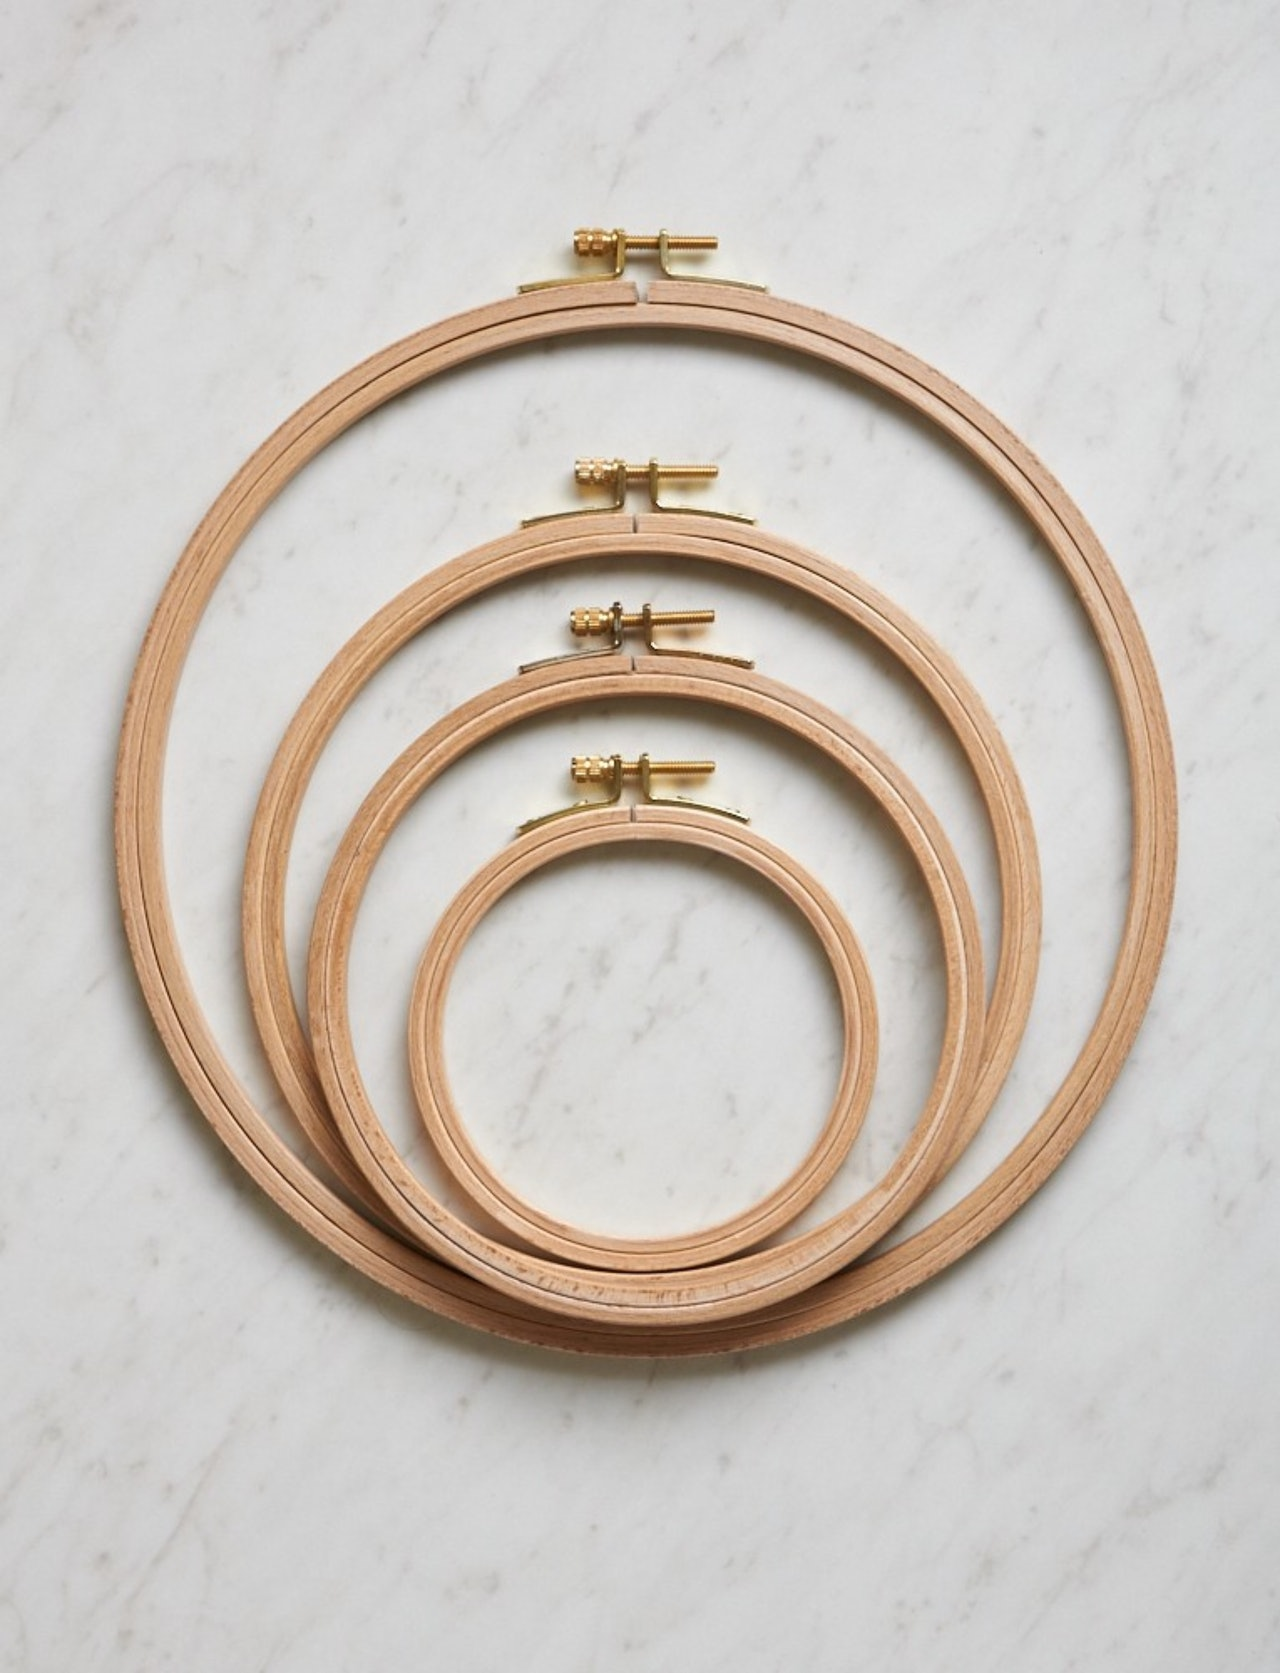 EMBROIDERY HOOPS  / BRODERIRAMMER